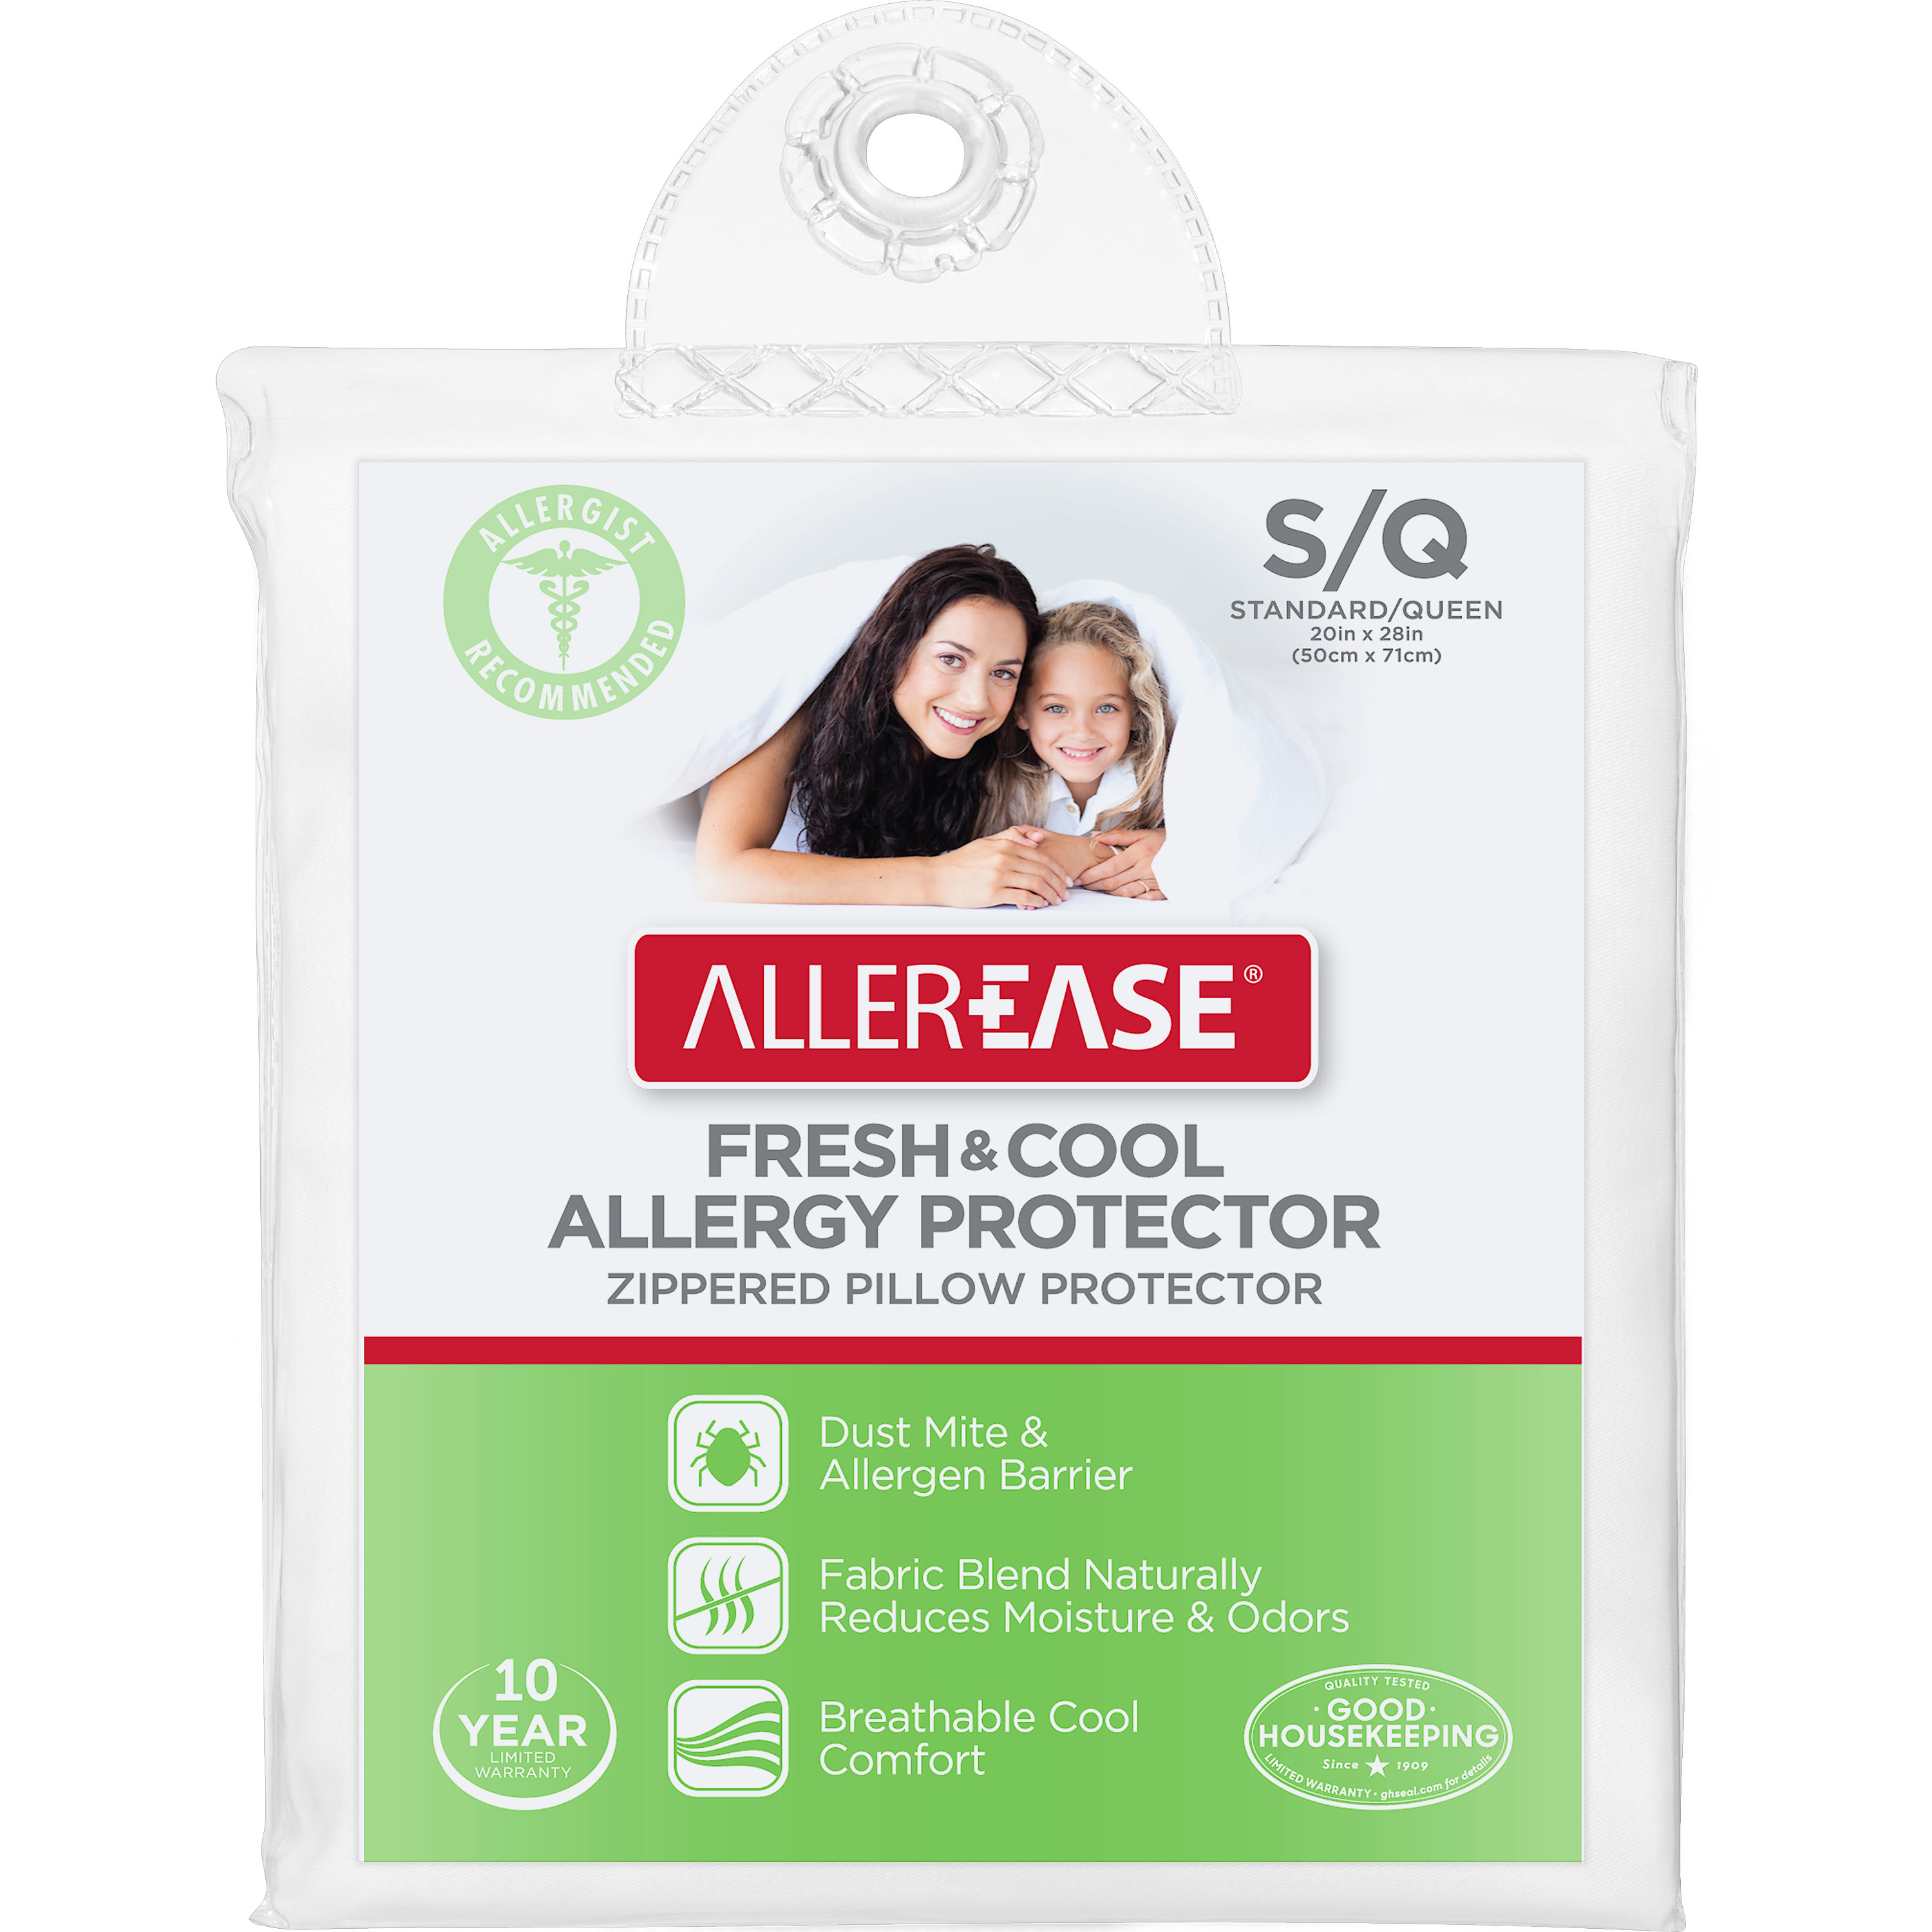 AllerEase Fresh & Cool Allergy Protection Zippered Pillow Cover, Standard/Queen